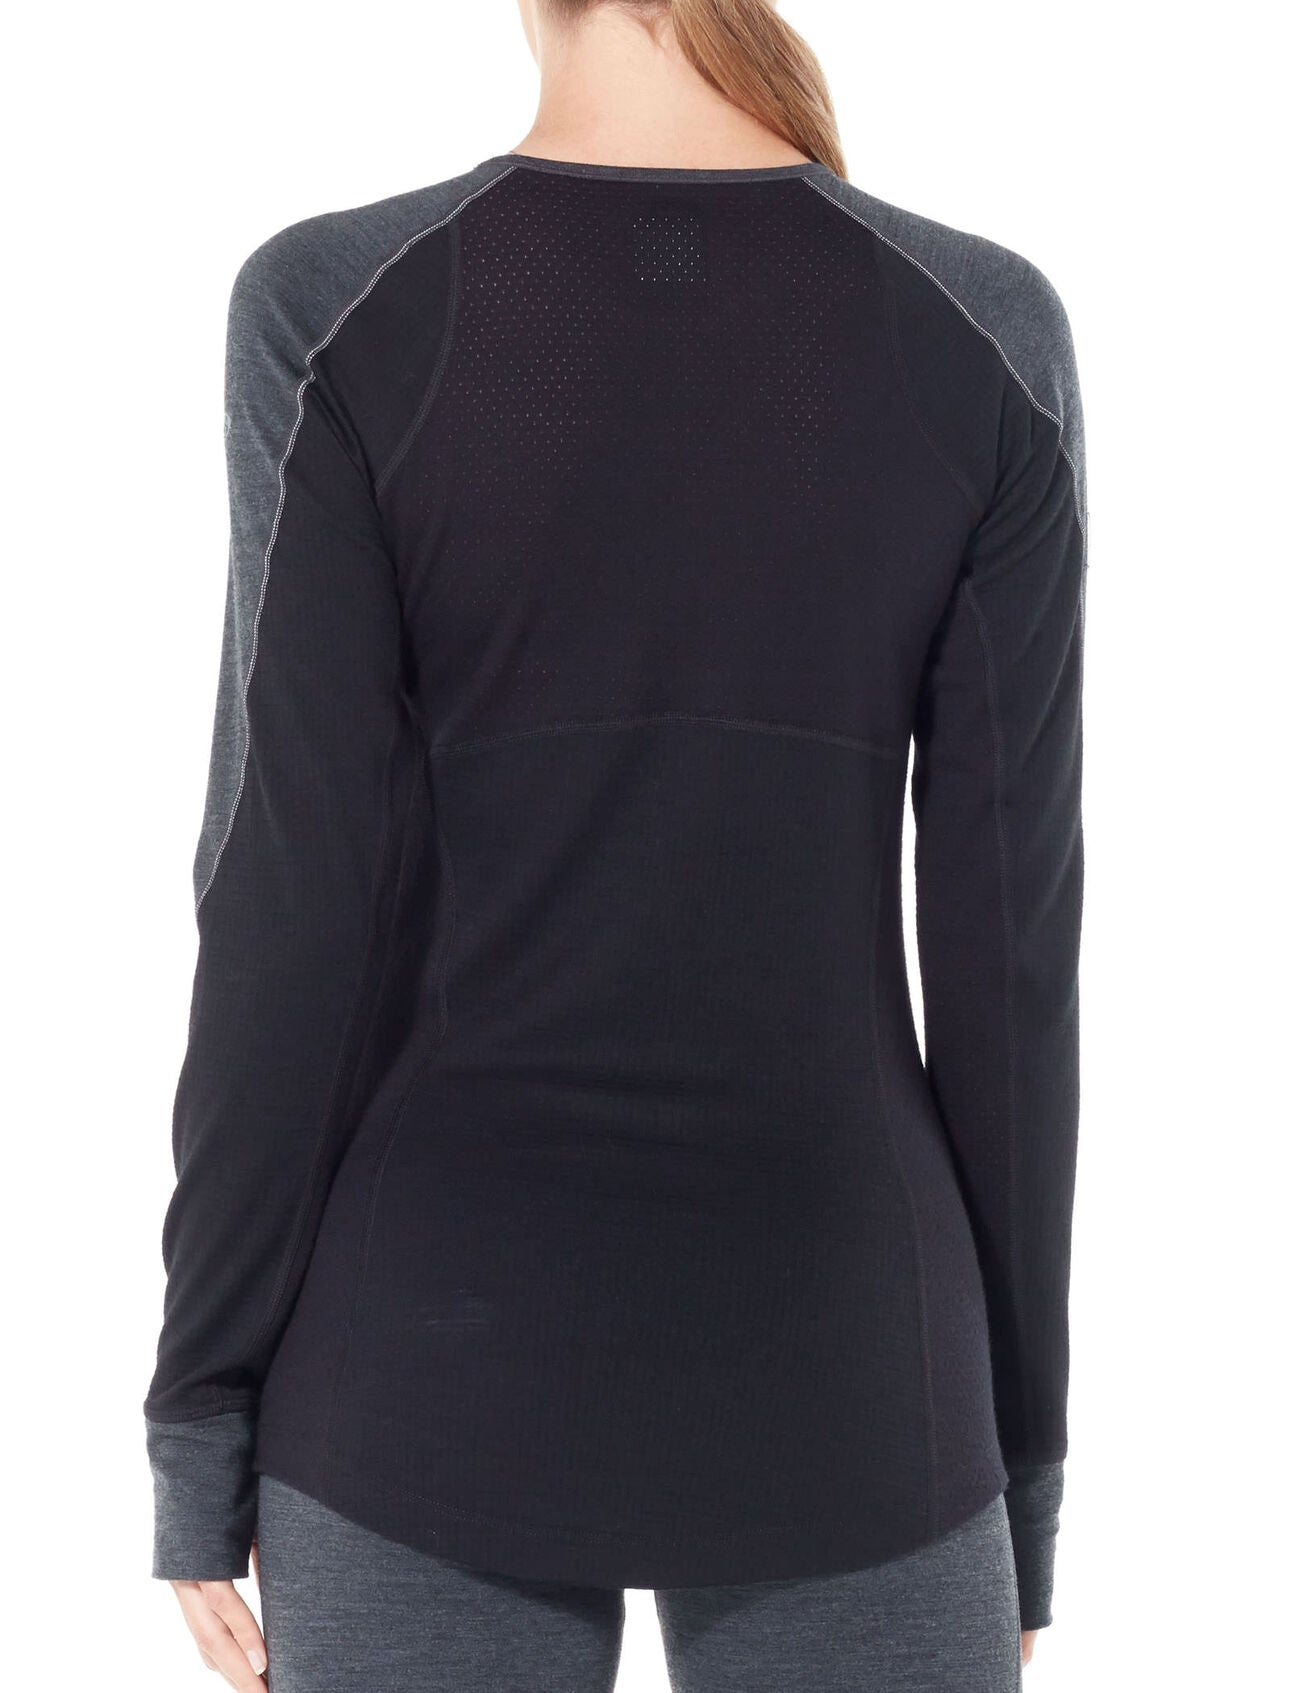 Icebreaker 260 Zone LS Crewe (Women's) Jet Heather Black W20 - Find Your Feet Australia Tasmania Hobart Launceston